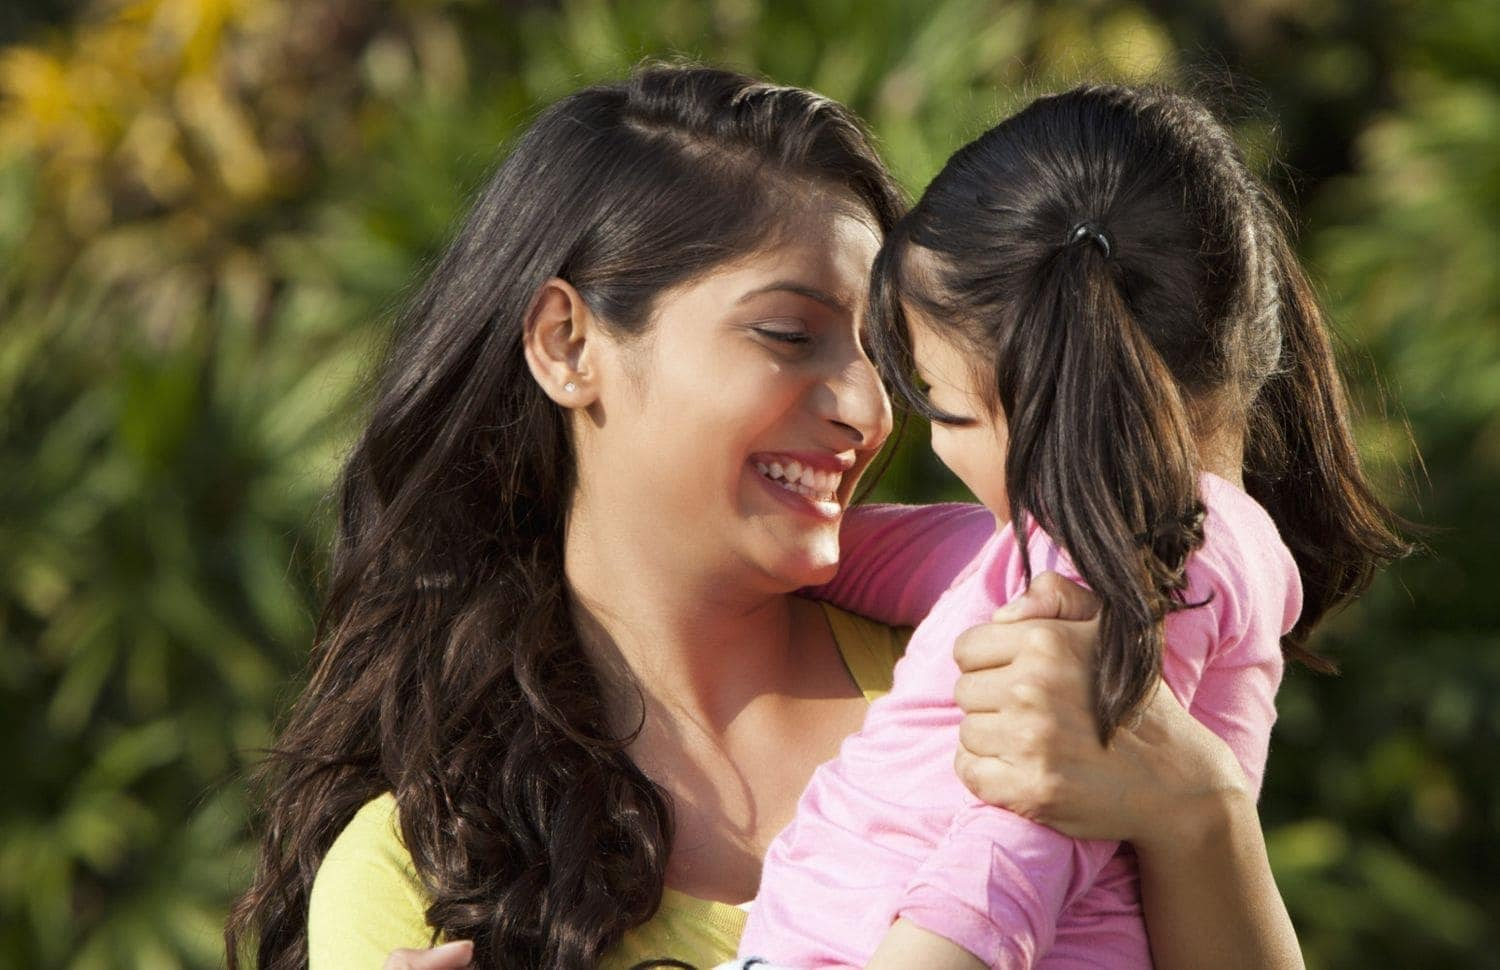 Daughter dream meaning, dream about daughter, daughter dream interpretation, seeing in a dream daughter